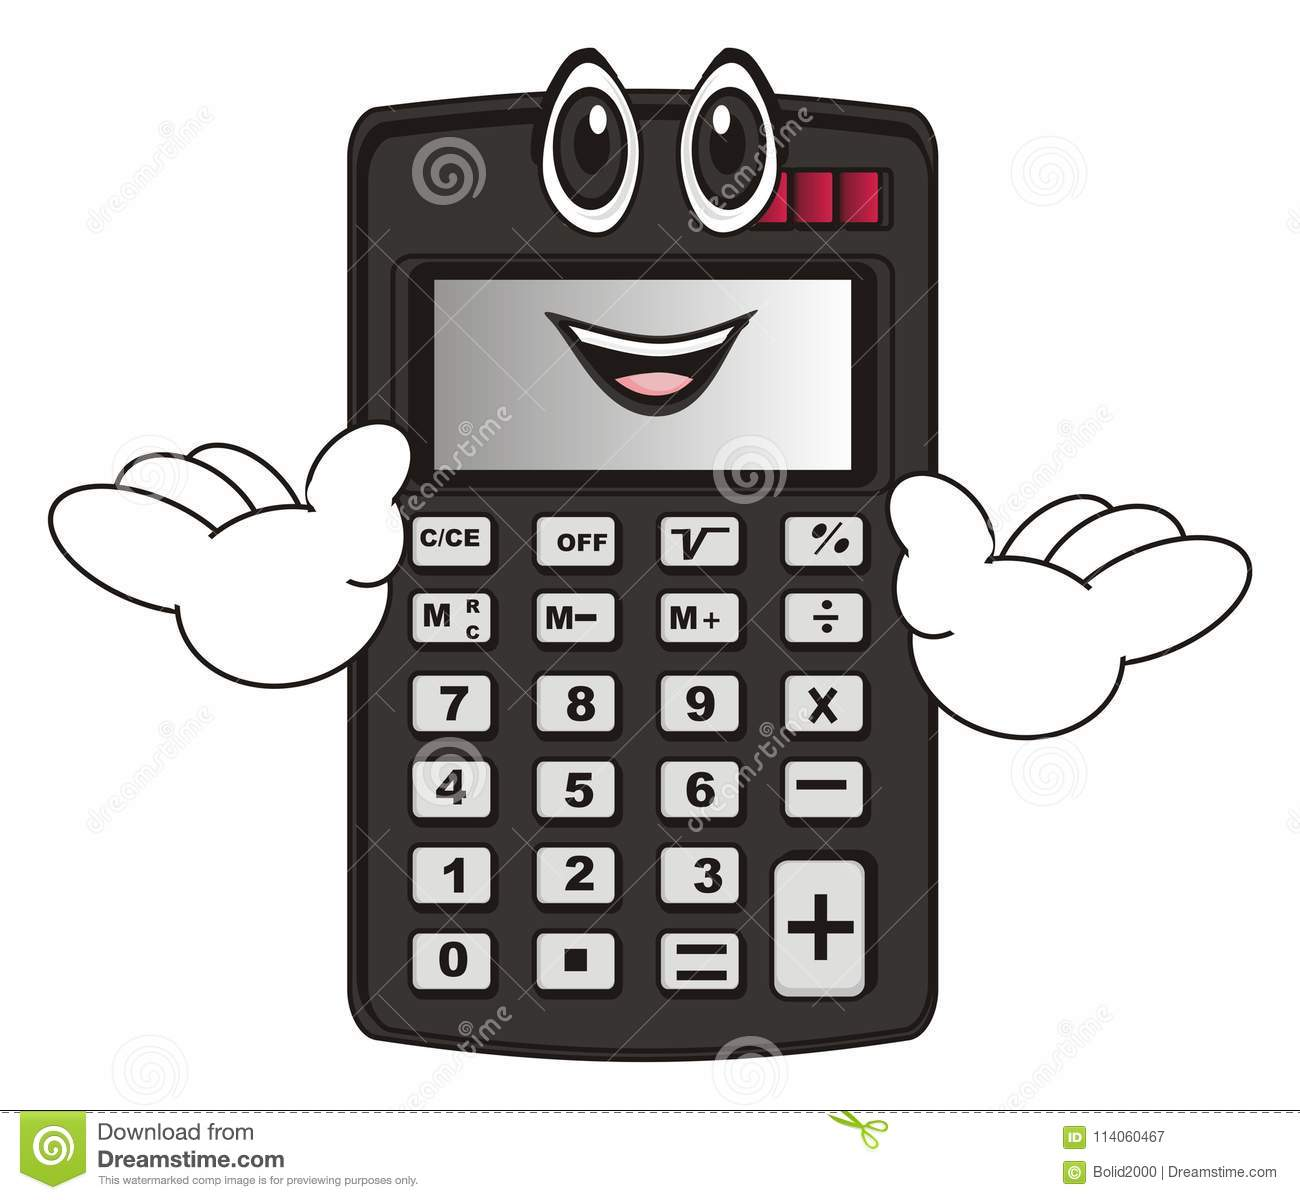 Funny calculator stand stock illustration  Illustration of